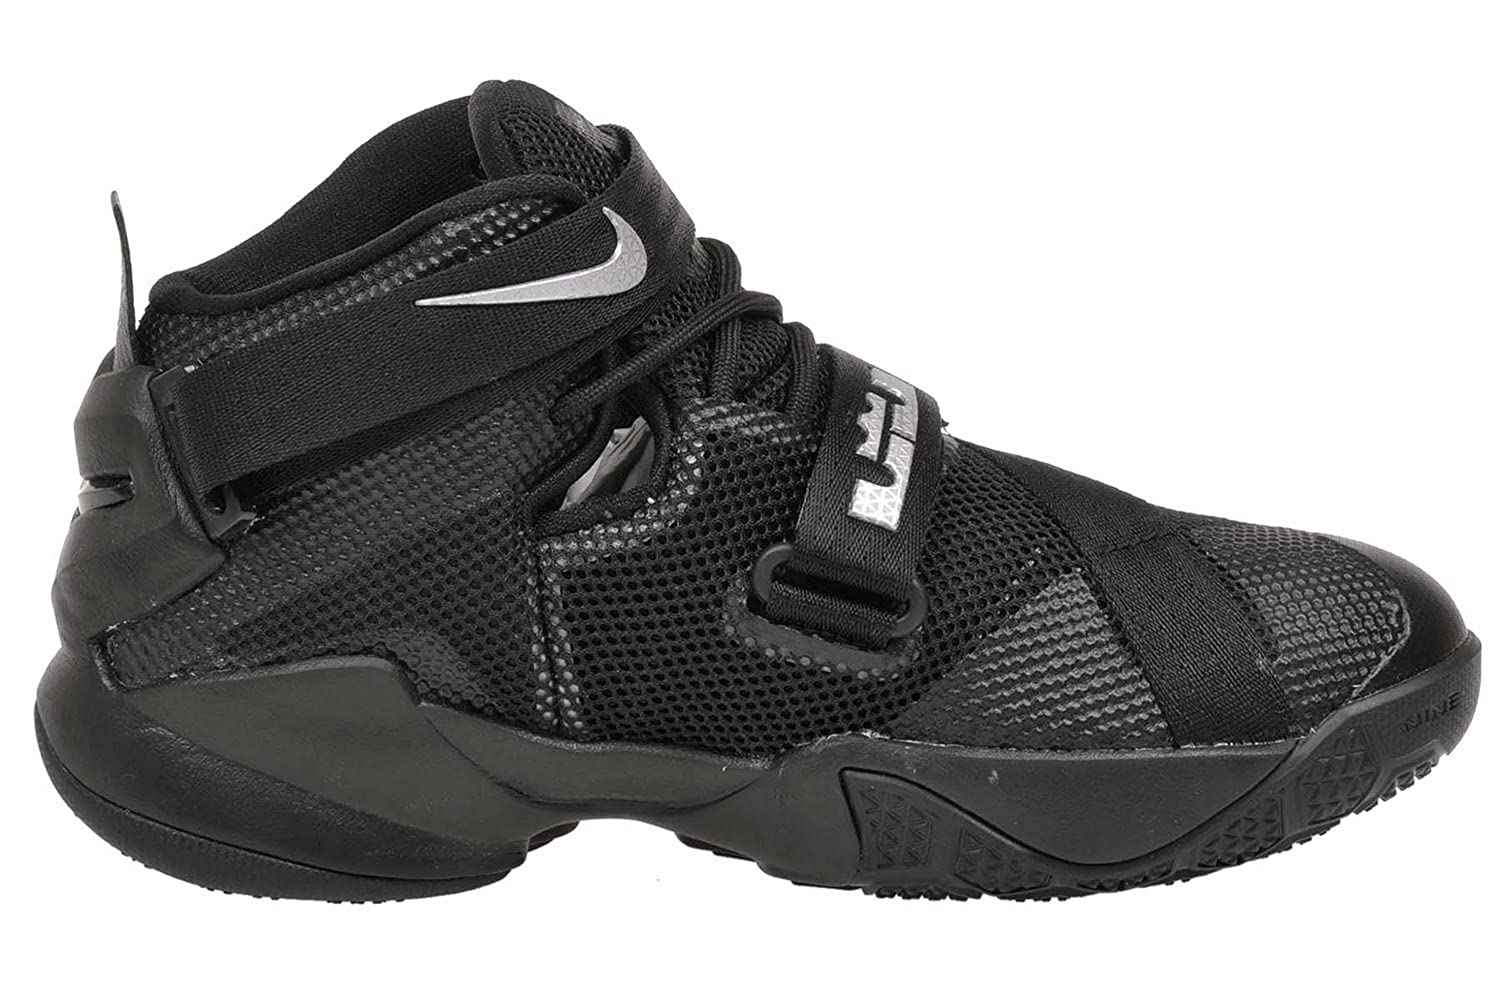 337888c10bf Nike Youth Lebron Soldier 9 Boys Basketball Shoes Black Metallic Silver  776471-001 Size 5  Buy Online at Low Prices in India - Amazon.in